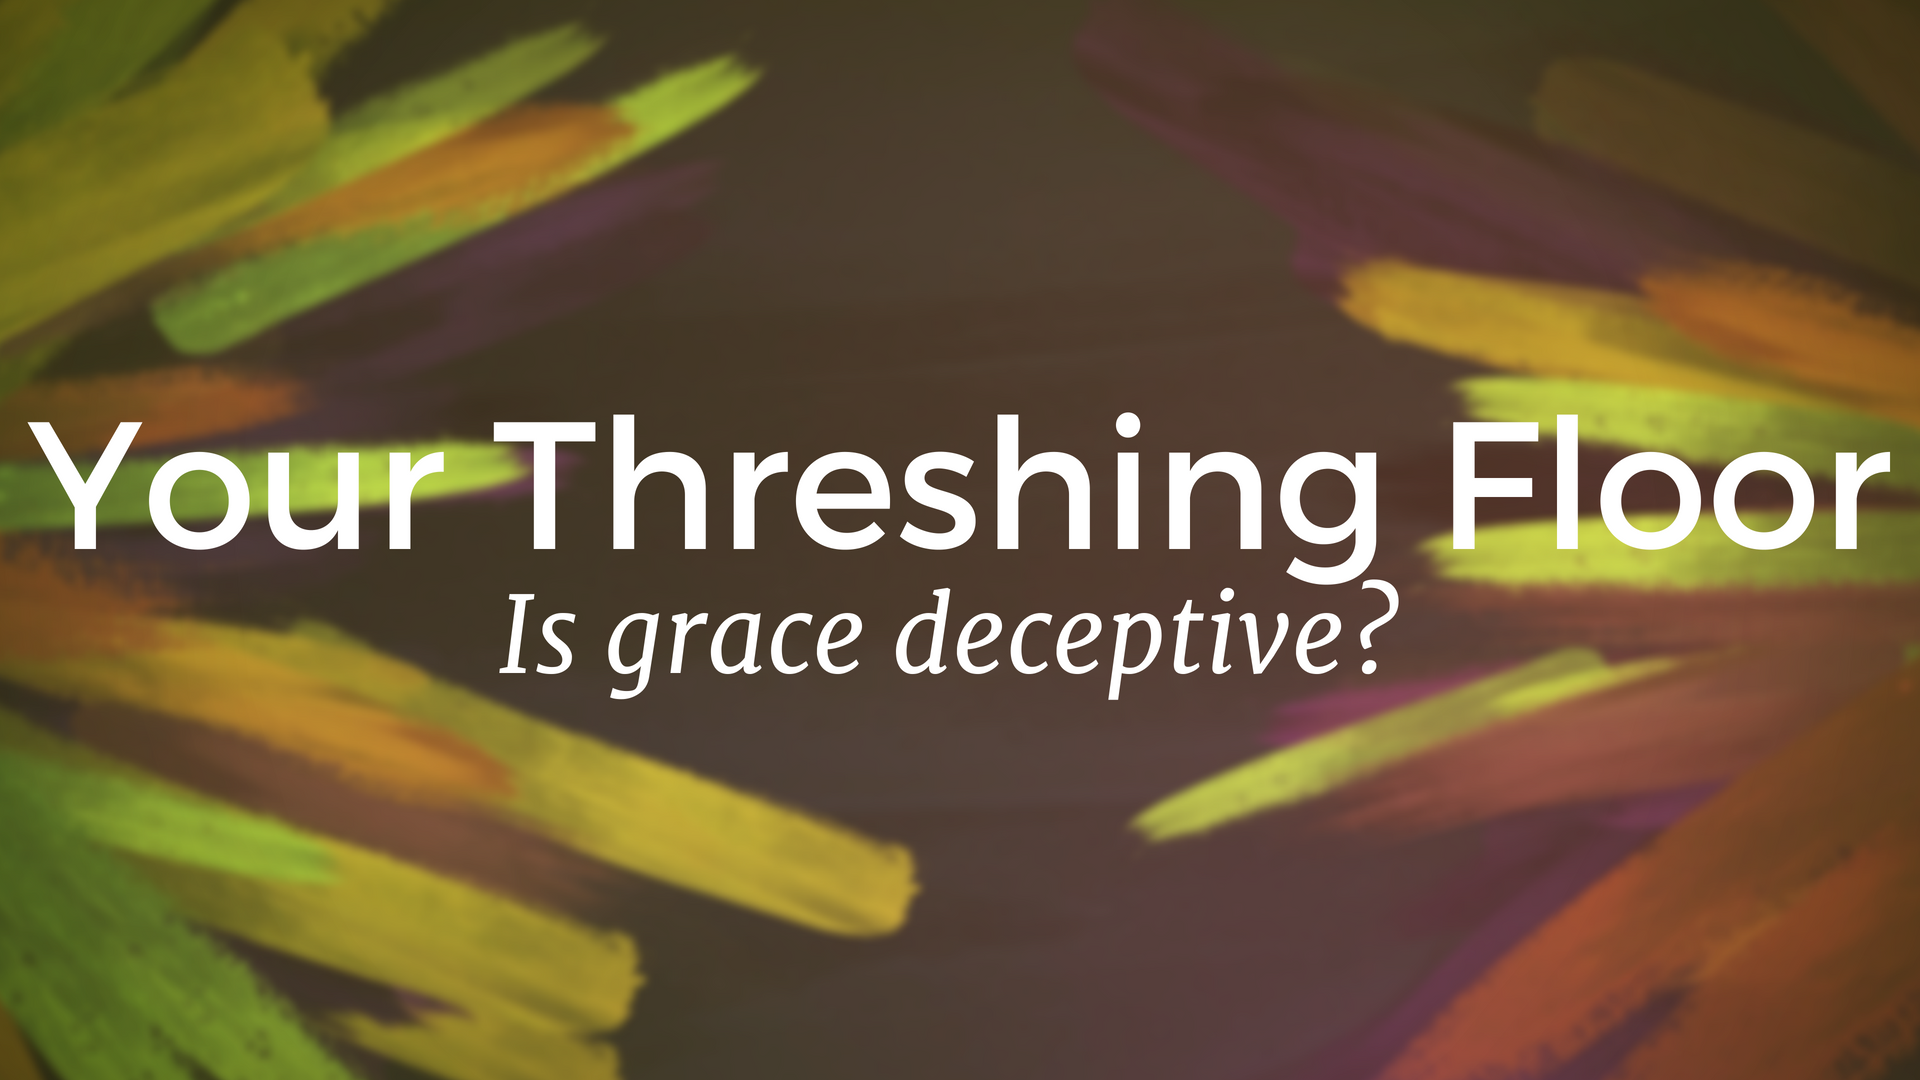 The Threshing Floor (Is Grace Deceptive?)